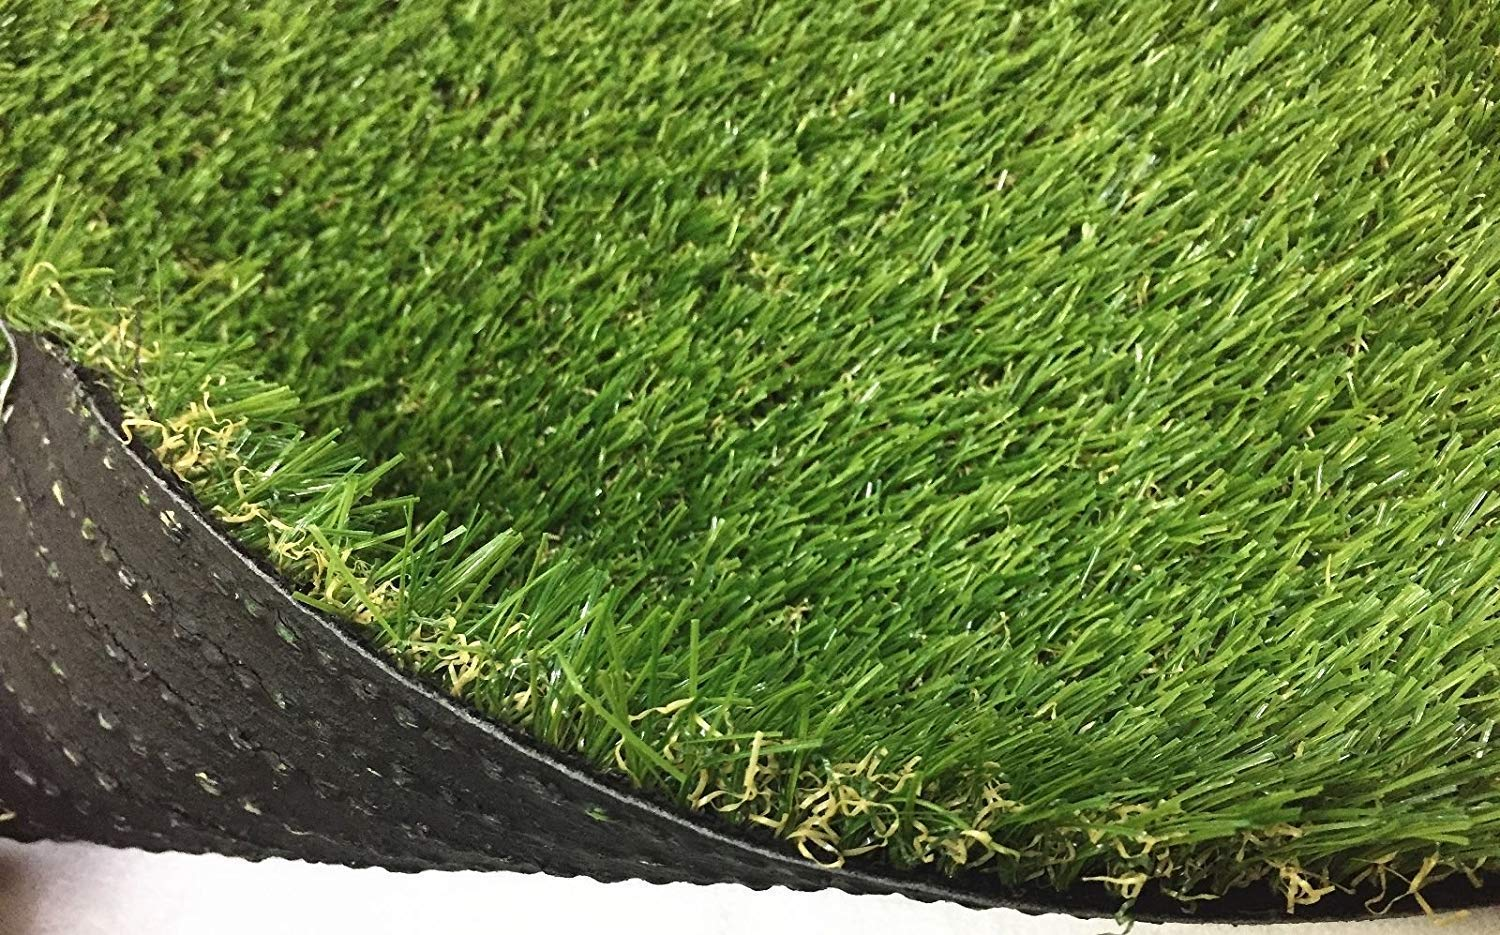 ARKMat G25B-2-1.5M Lords Artificial Grass, Green, 2 x 1.5 m | High Density Fake Turf | Cheap Natural & Realistic Looking Astro Garden Lawn G25B-2-1M